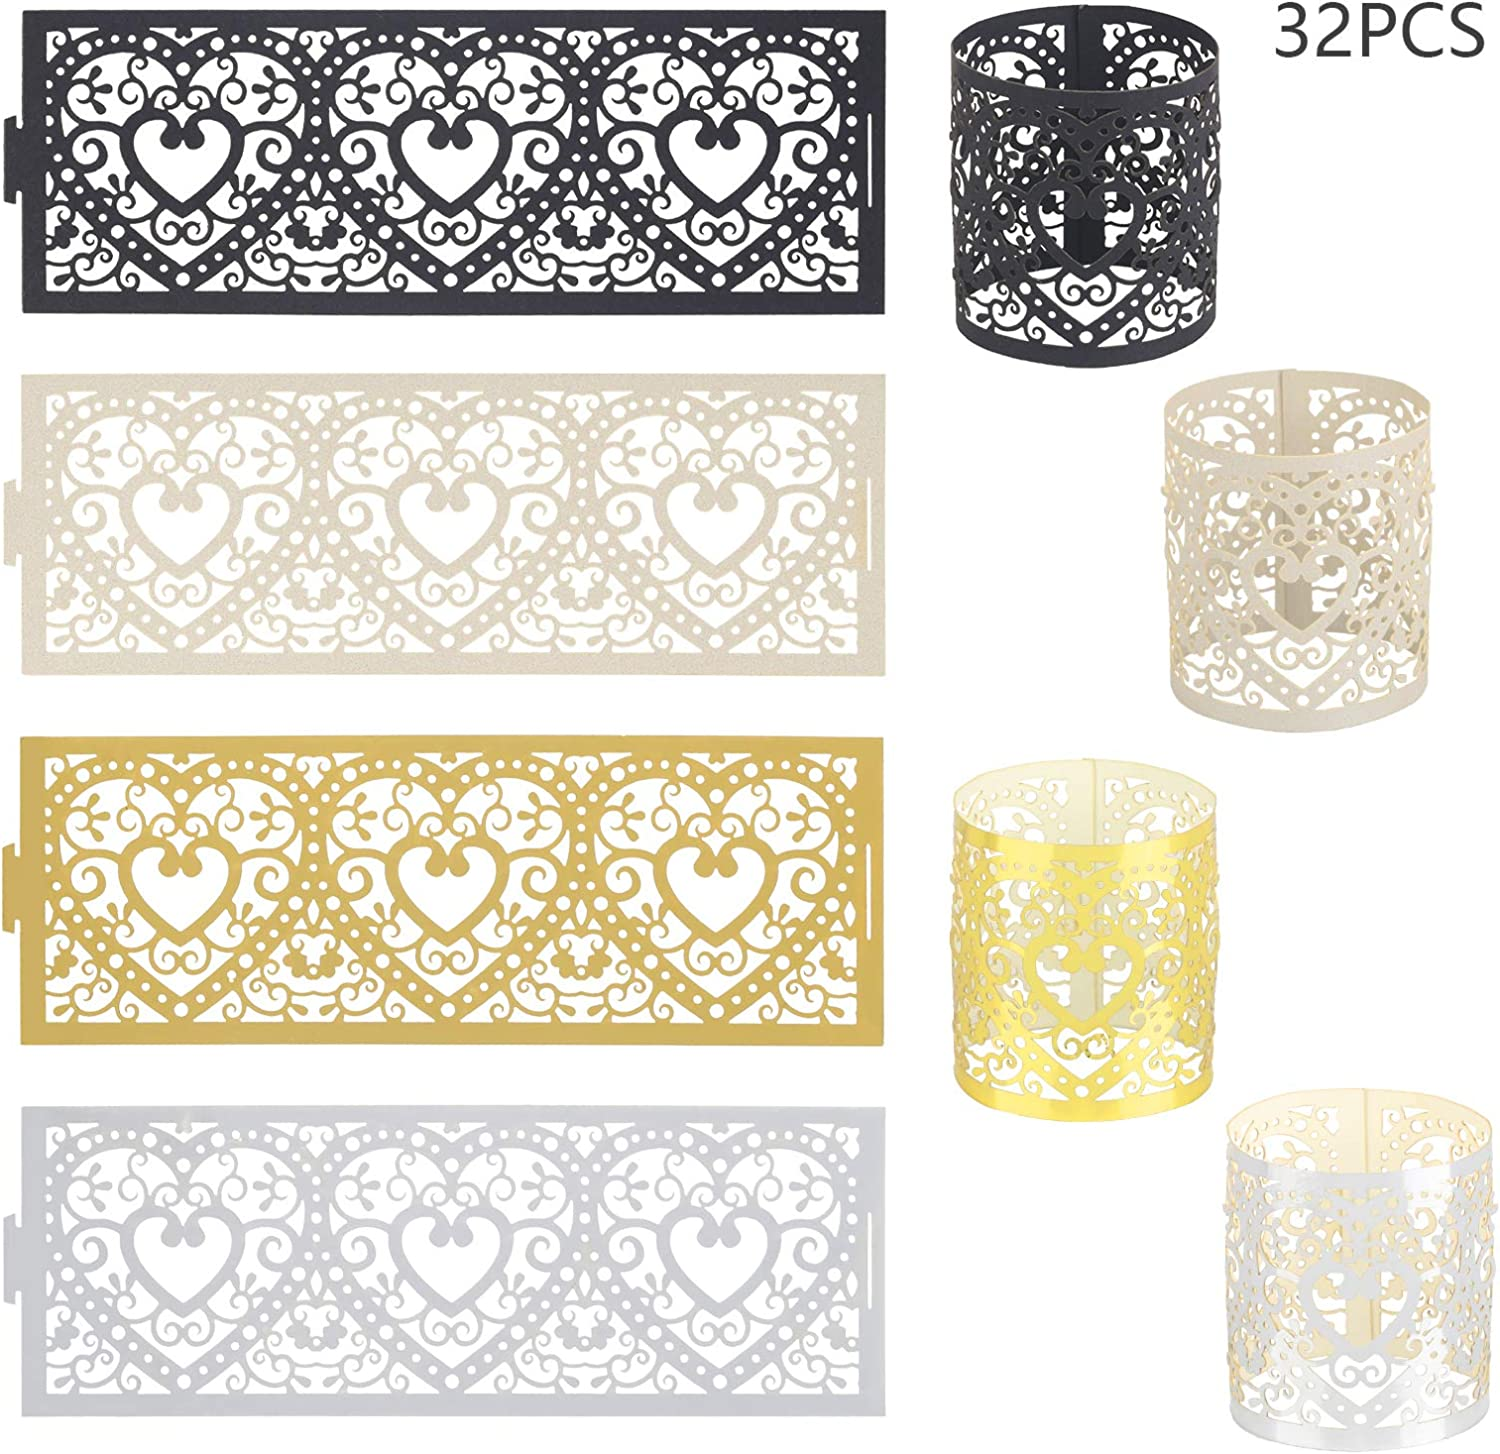 CHALA 32pcs Candle Wraps Paper,Flameless Tea Light Votive Candle Holder Laser Cut Decorative for Valentines Day Wedding Birthday Decoration Black,Gold,White,Silver